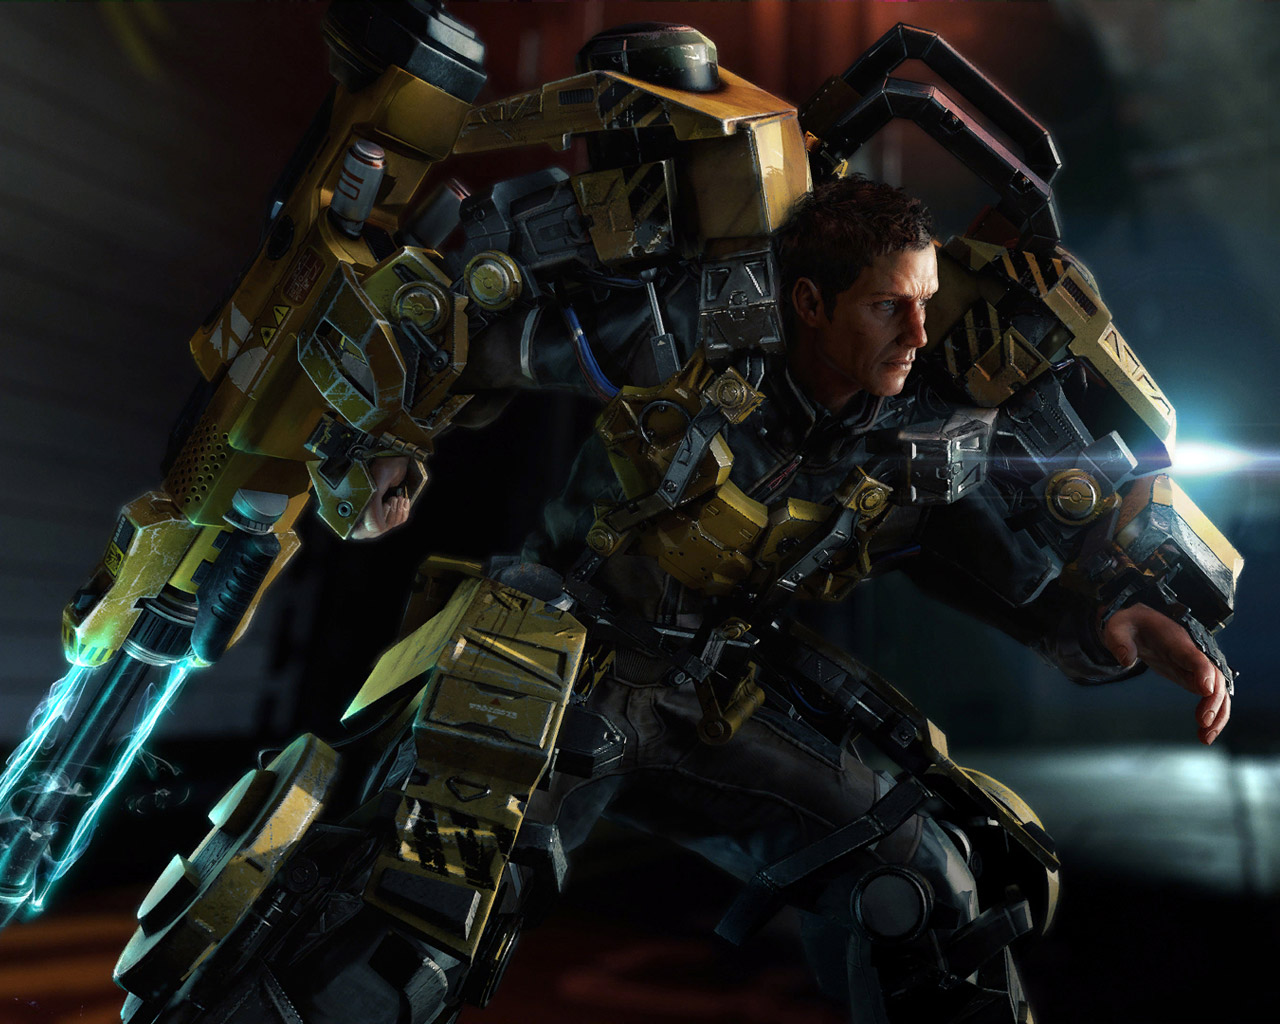 Free The Surge Wallpaper in 1280x1024